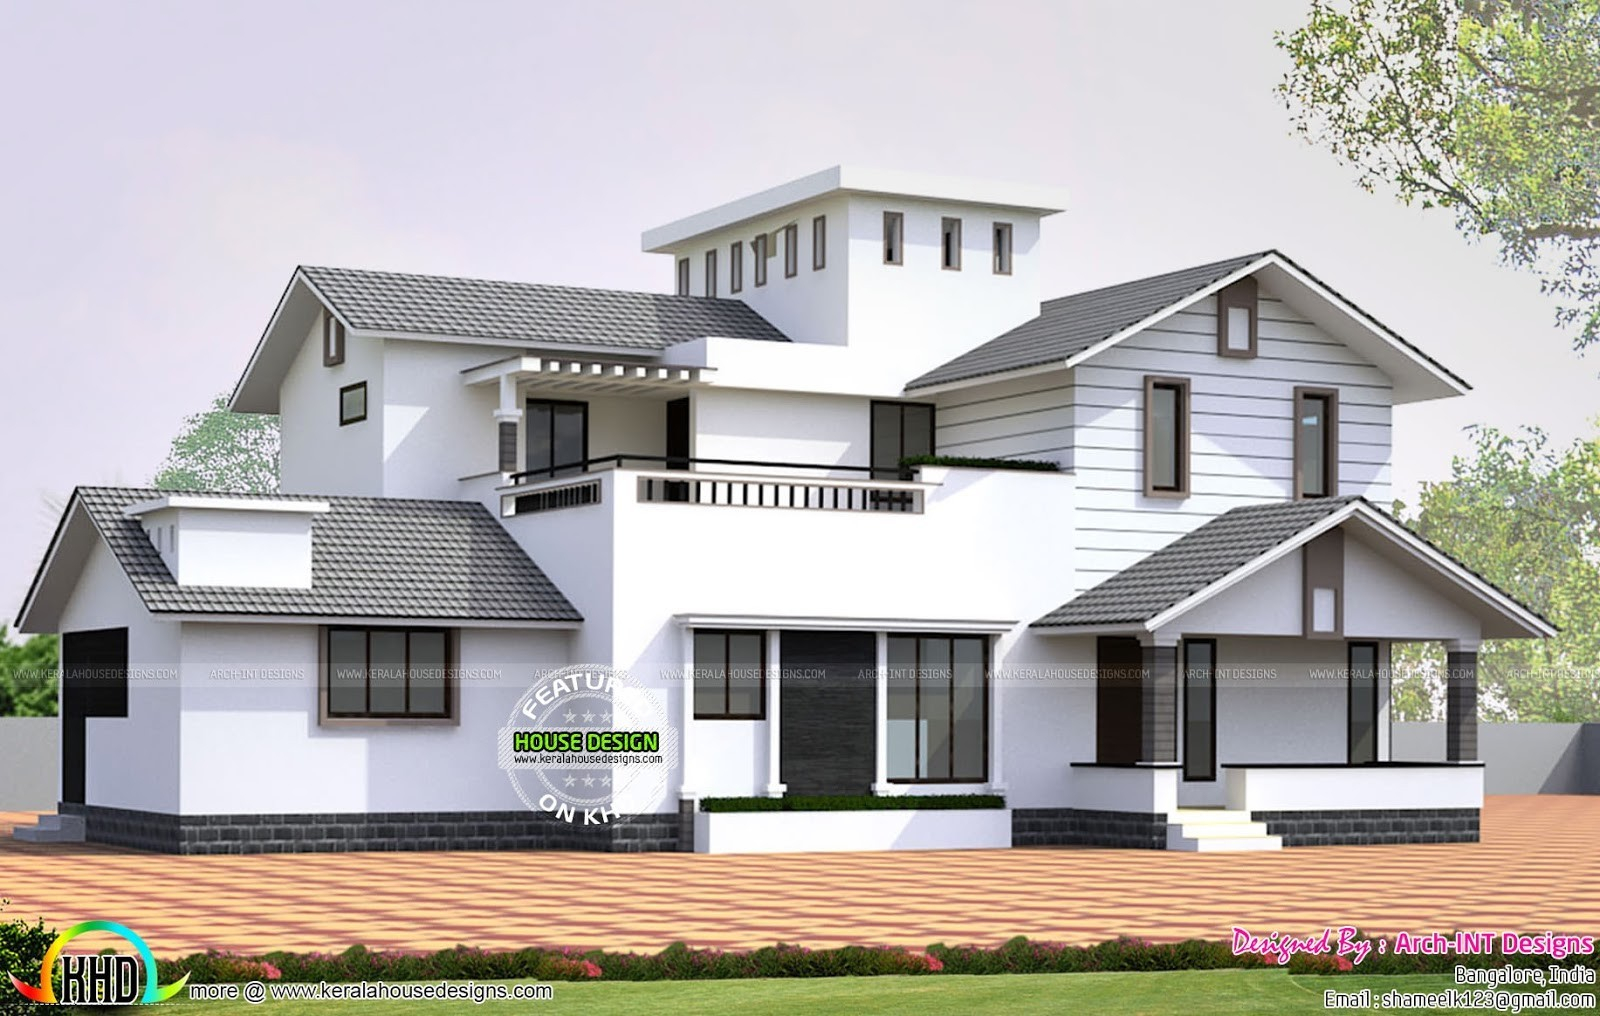 Elite Kerala Single Floor House Plans Fresh L Shaped House Plans Kerala within Fresh New House Plans In Kerala